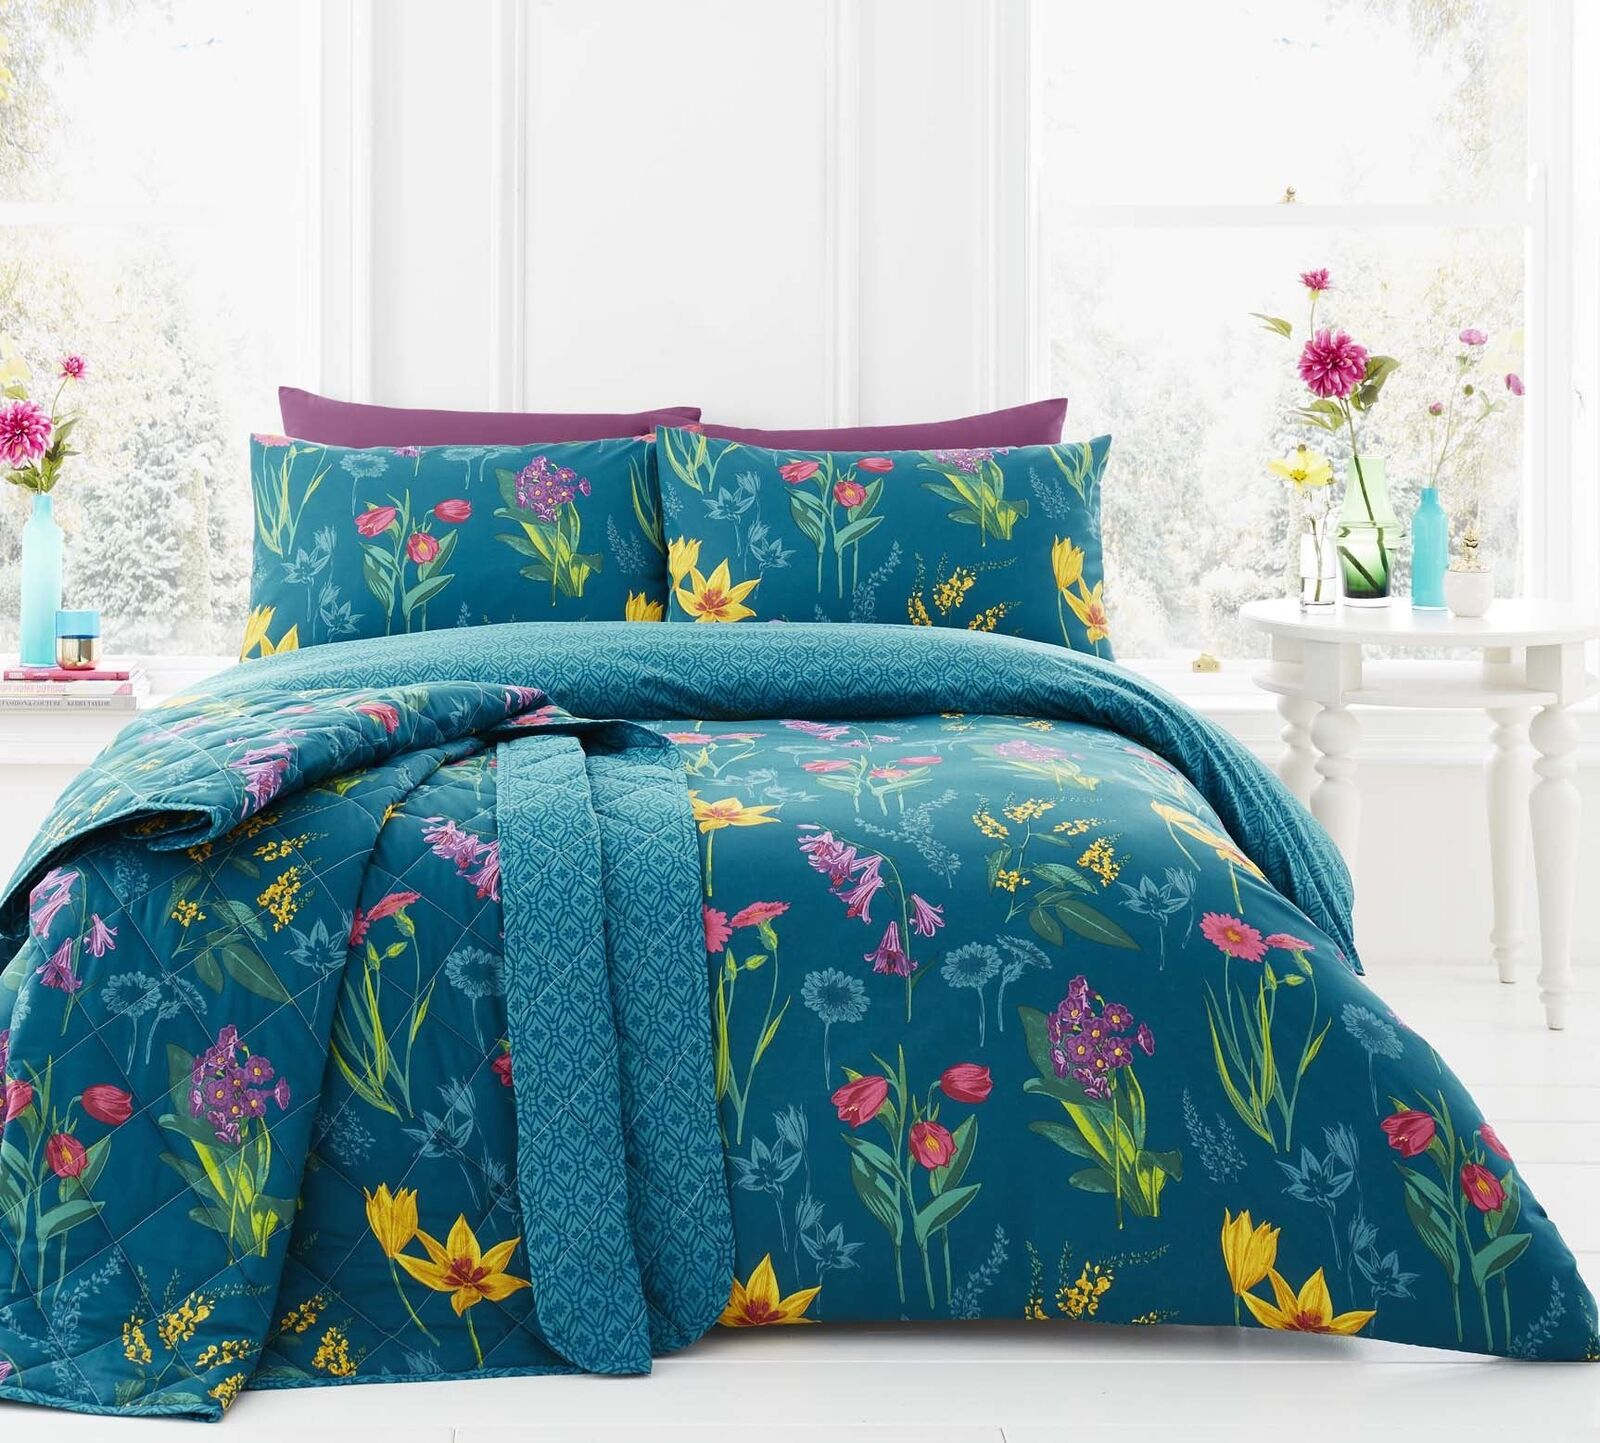 WILD FLOWERS FLORAL GEOMETRIC TEAL DOUBLE 4 PIECE BEDDING SET